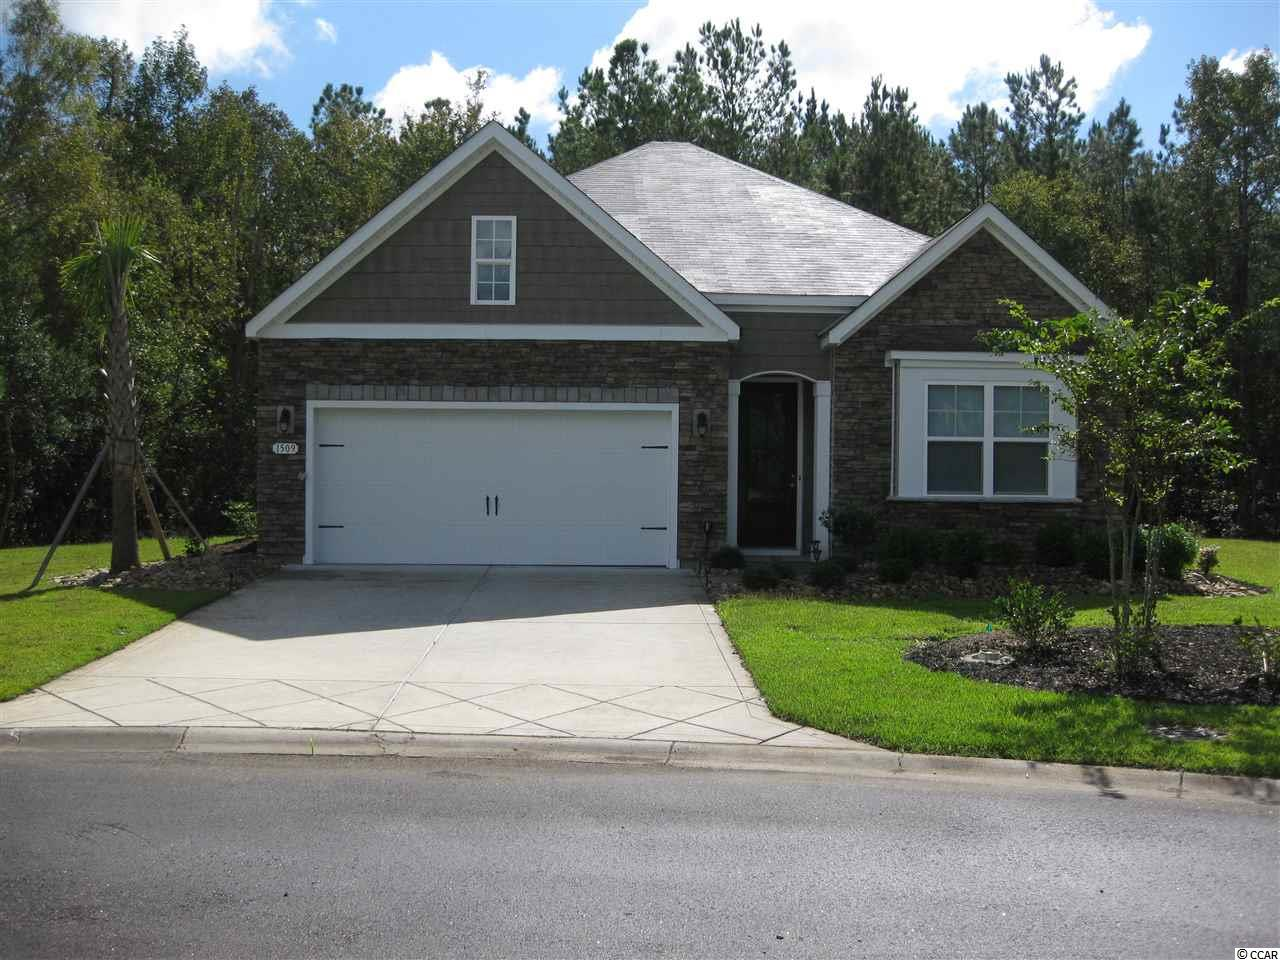 This 4 bedroom/2 bath home shows as if it was never lived in, IMMACULATE! Protected wetlands behind house so there will never be anything built there. Seller has had no flooding problems whatsoever. An occasional deer has been seen and lots of other wildlife. Enjoy your huge kitchen island with granite counters and stainless steel appliances. Split bedroom plan. Fireplace in living room.